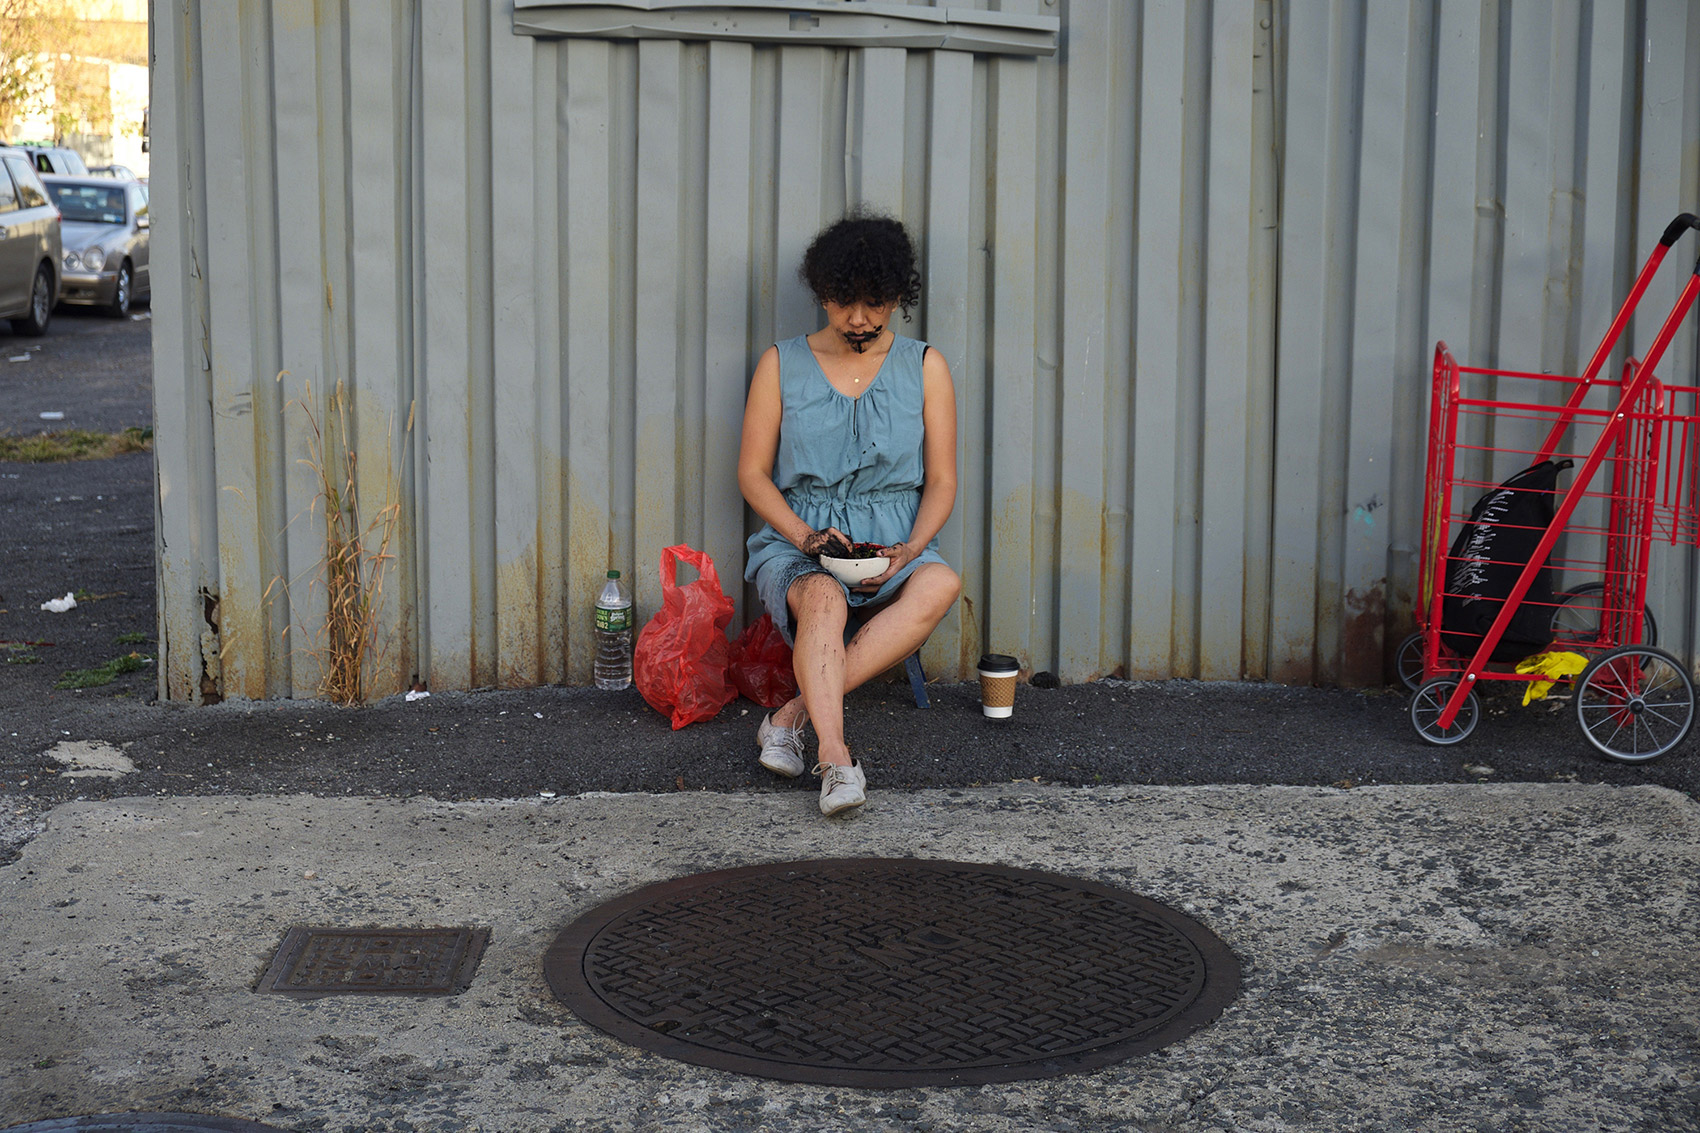 Monica Palma, Chacmool3, Burnt tortillas, coffee, saliva, dress and manhole cover, 2017